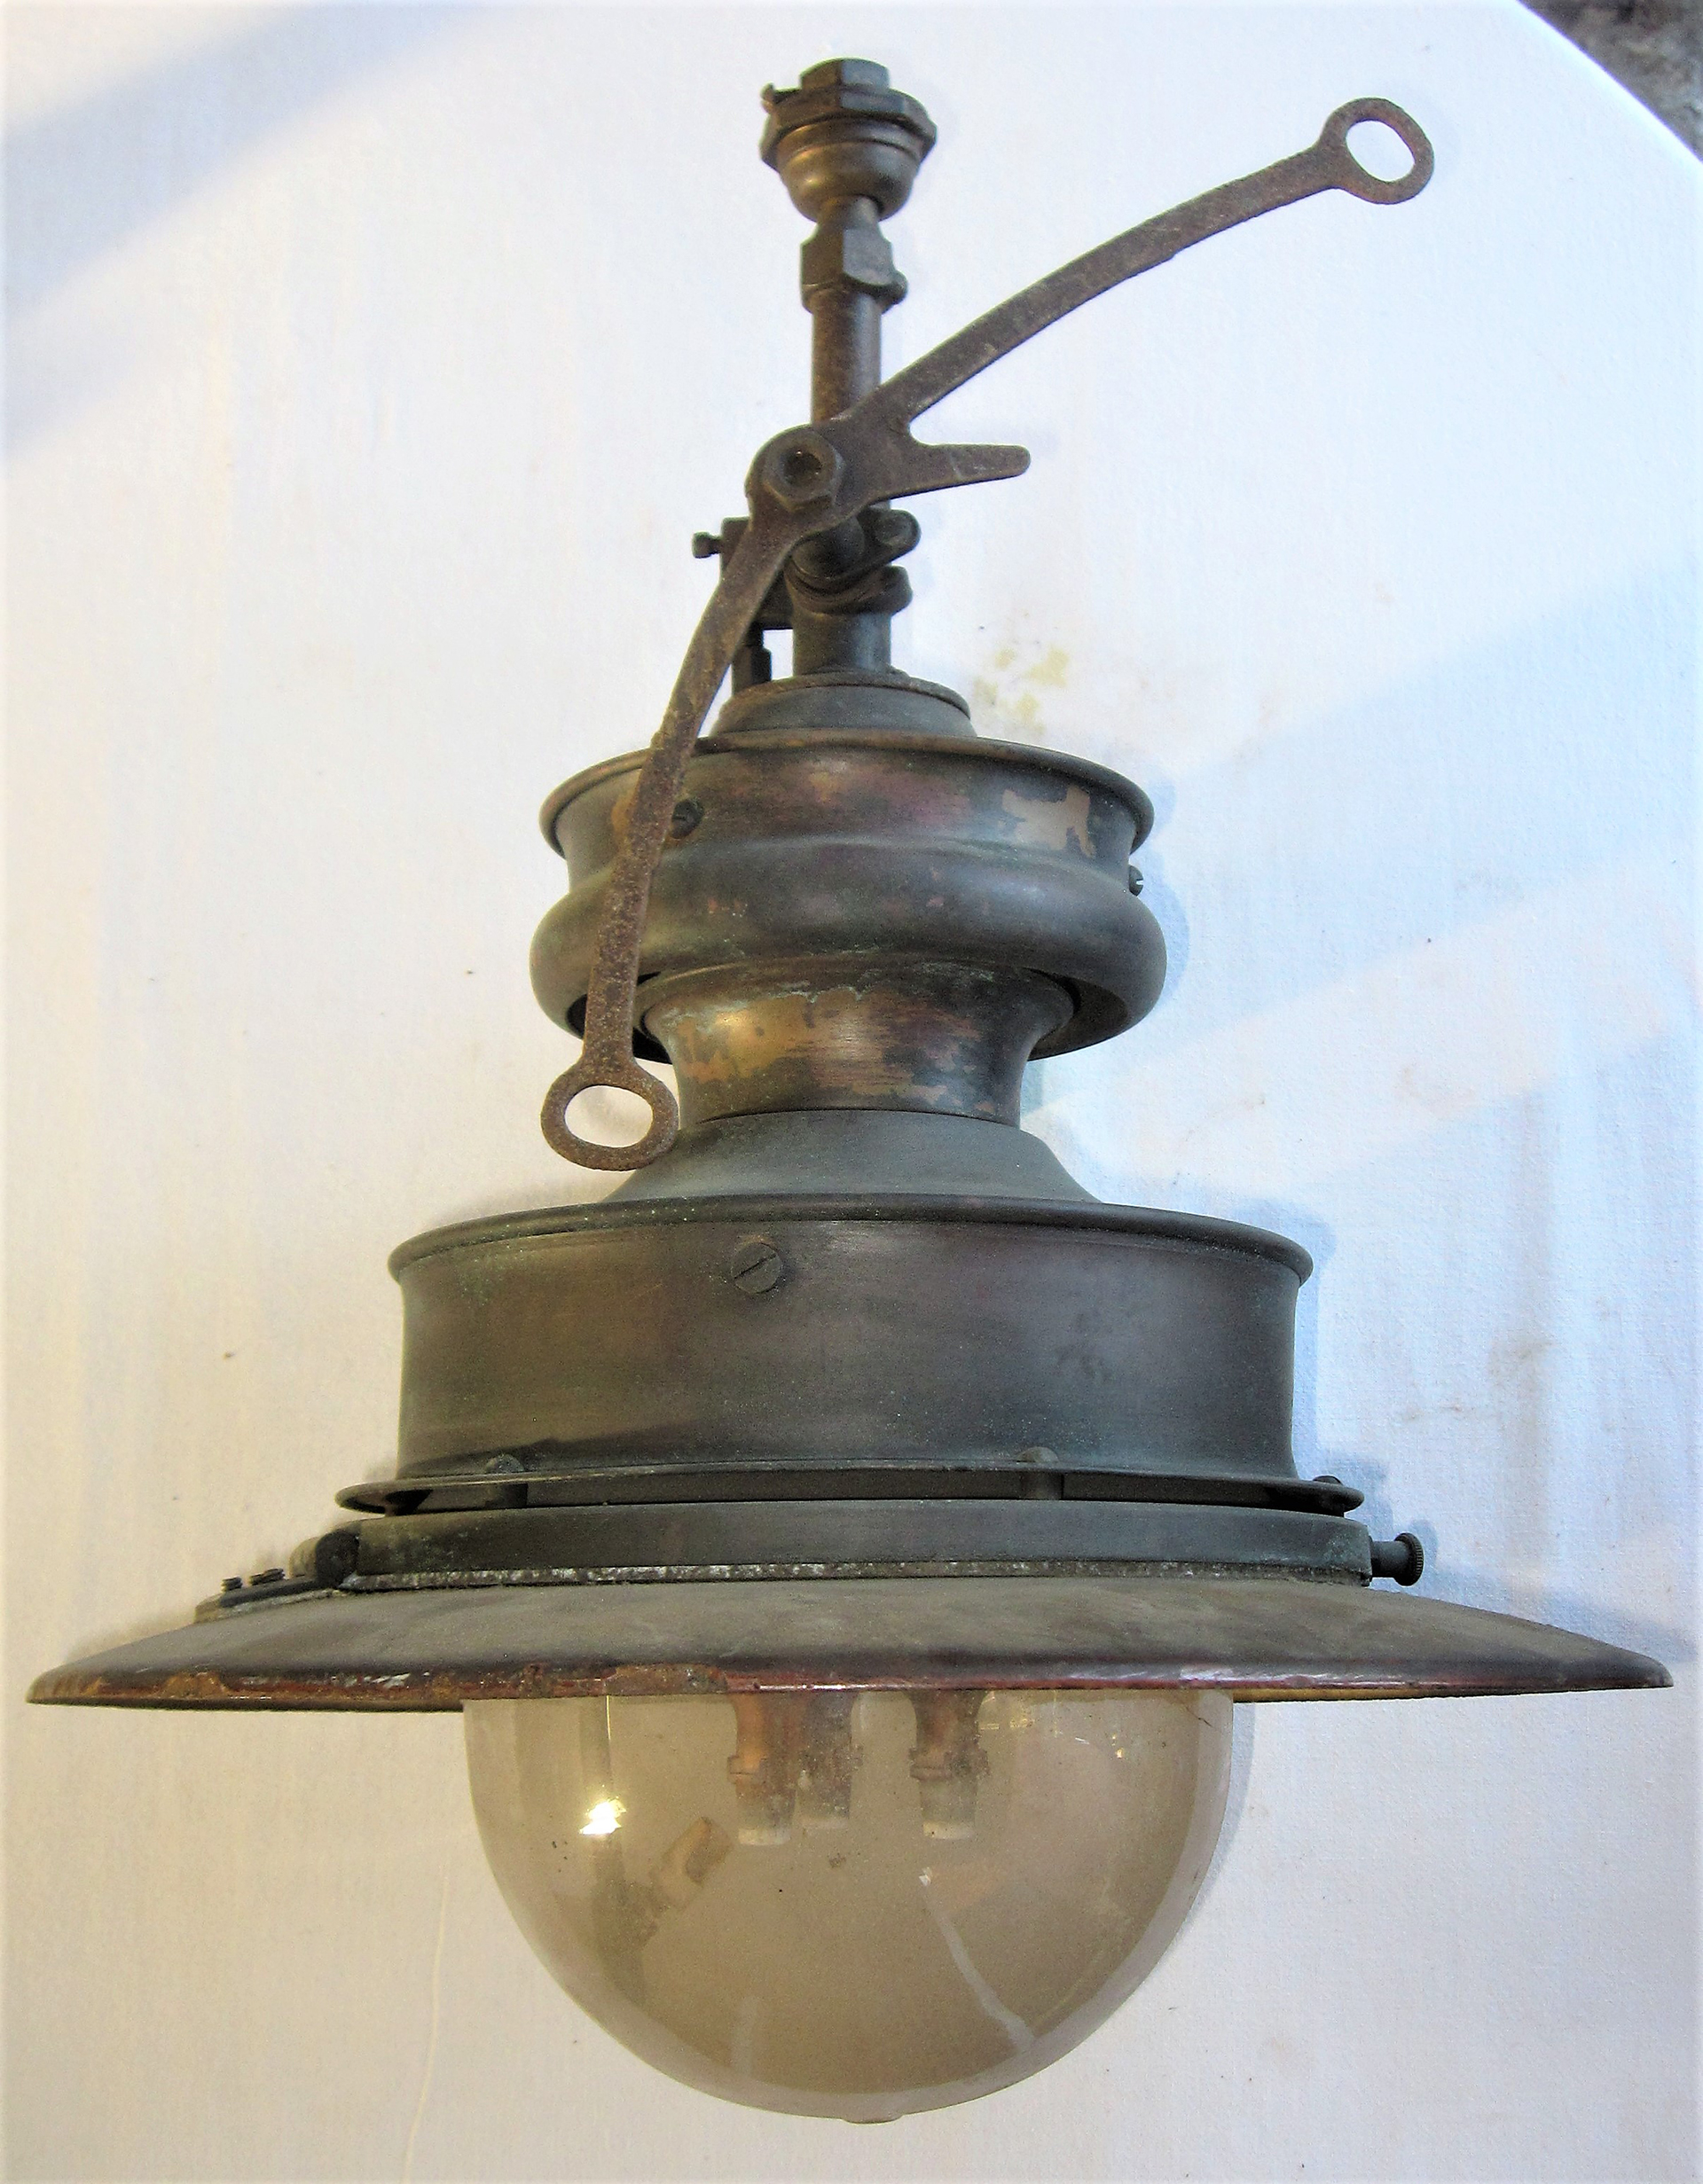 Sugg copper Station Gas Lamp. Complete with operating valve, lever and globe. Good original